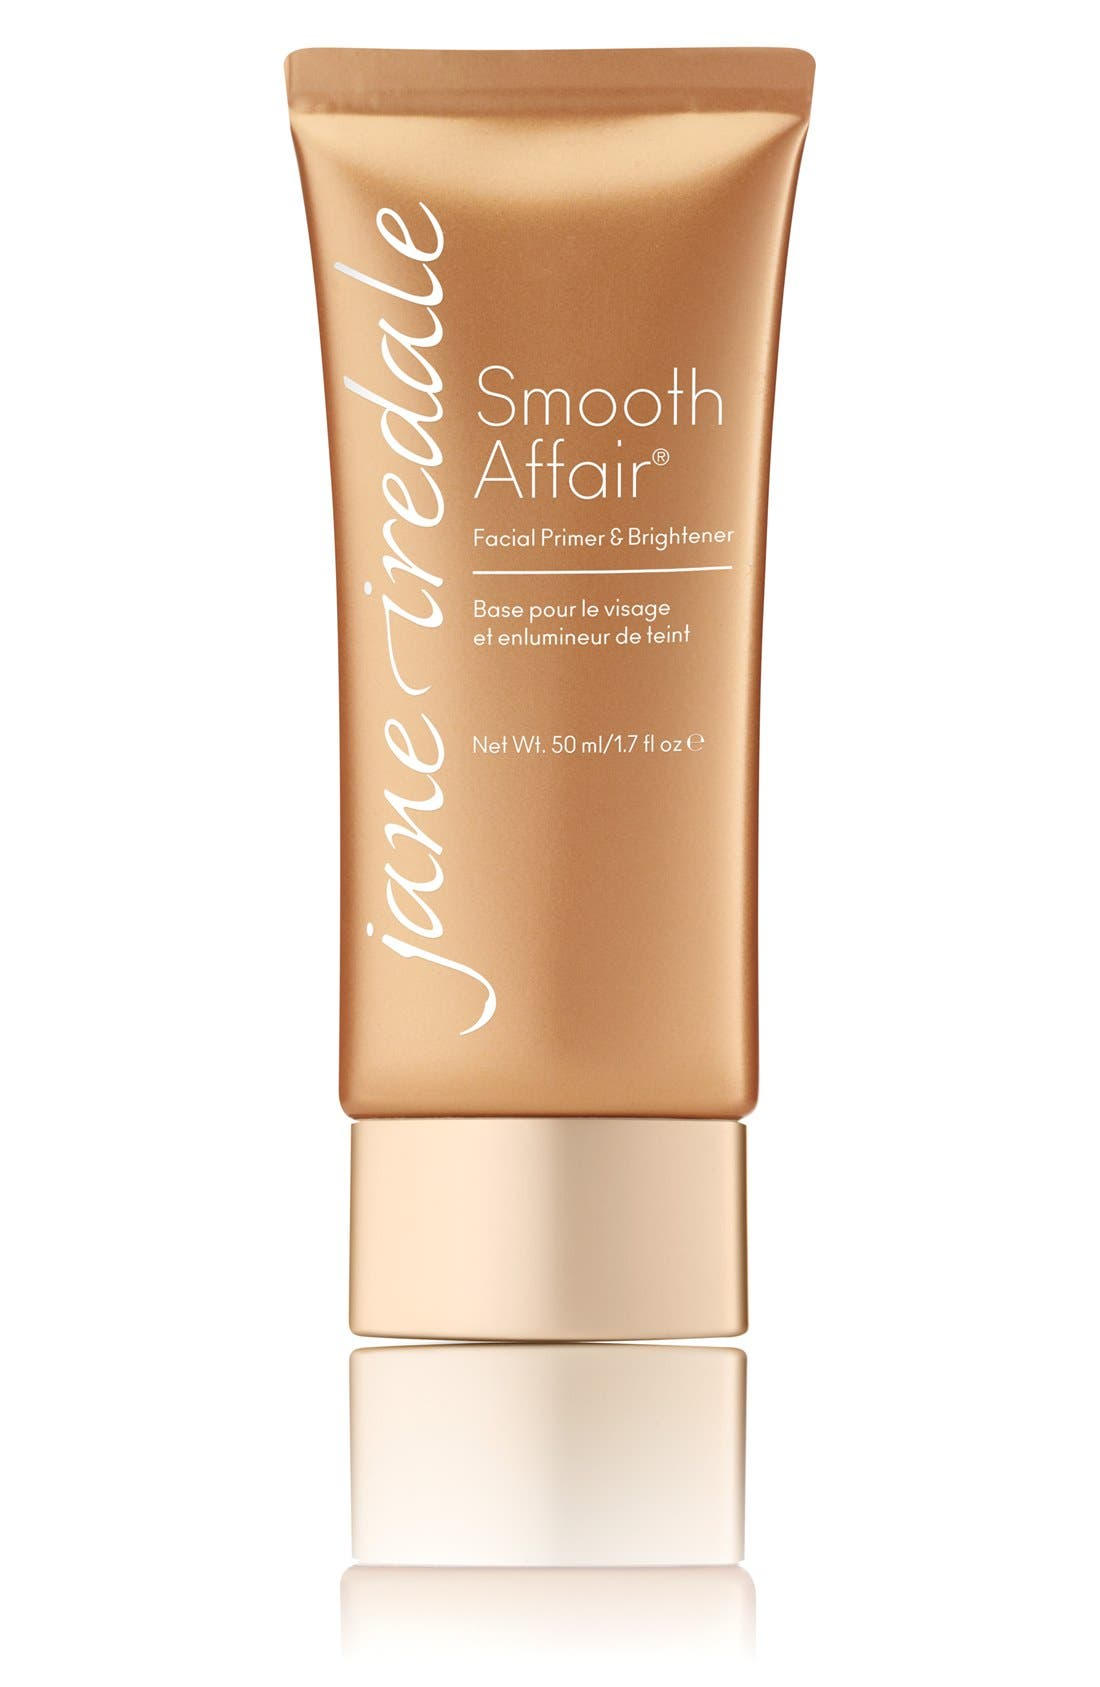 Smooth Affair Facial Primer & Brightener,                             Main thumbnail 1, color,                             NO COLOR